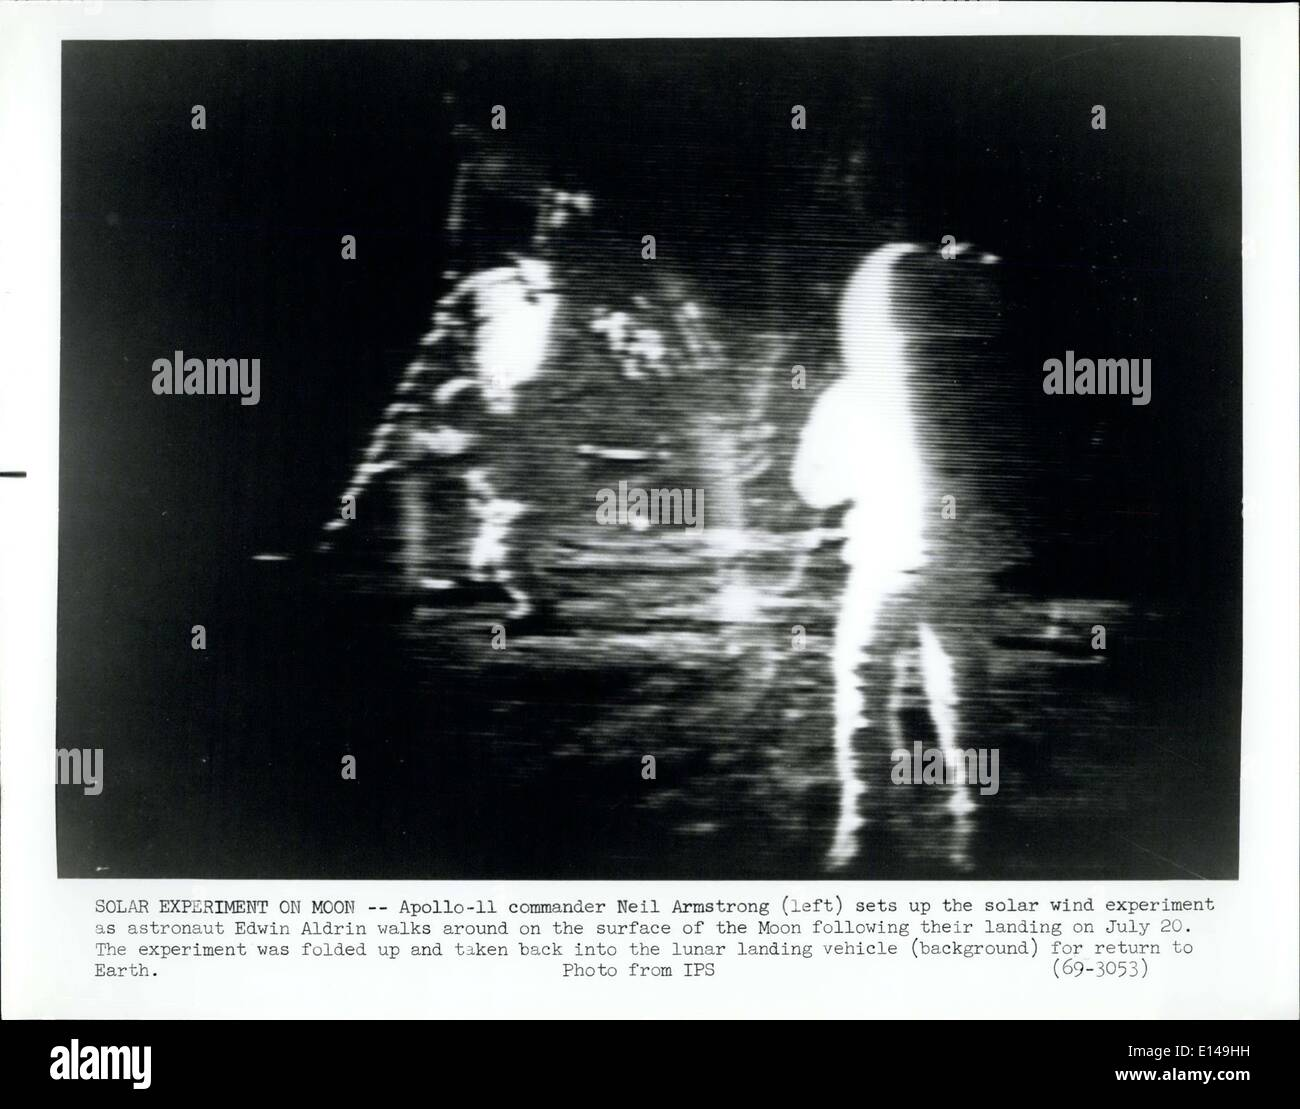 Apr. 17, 2012 - Solar experiment On Moon-Apollo-11 commander Neil Armstrong left sets up the Solar Wind experiment Stock Photo